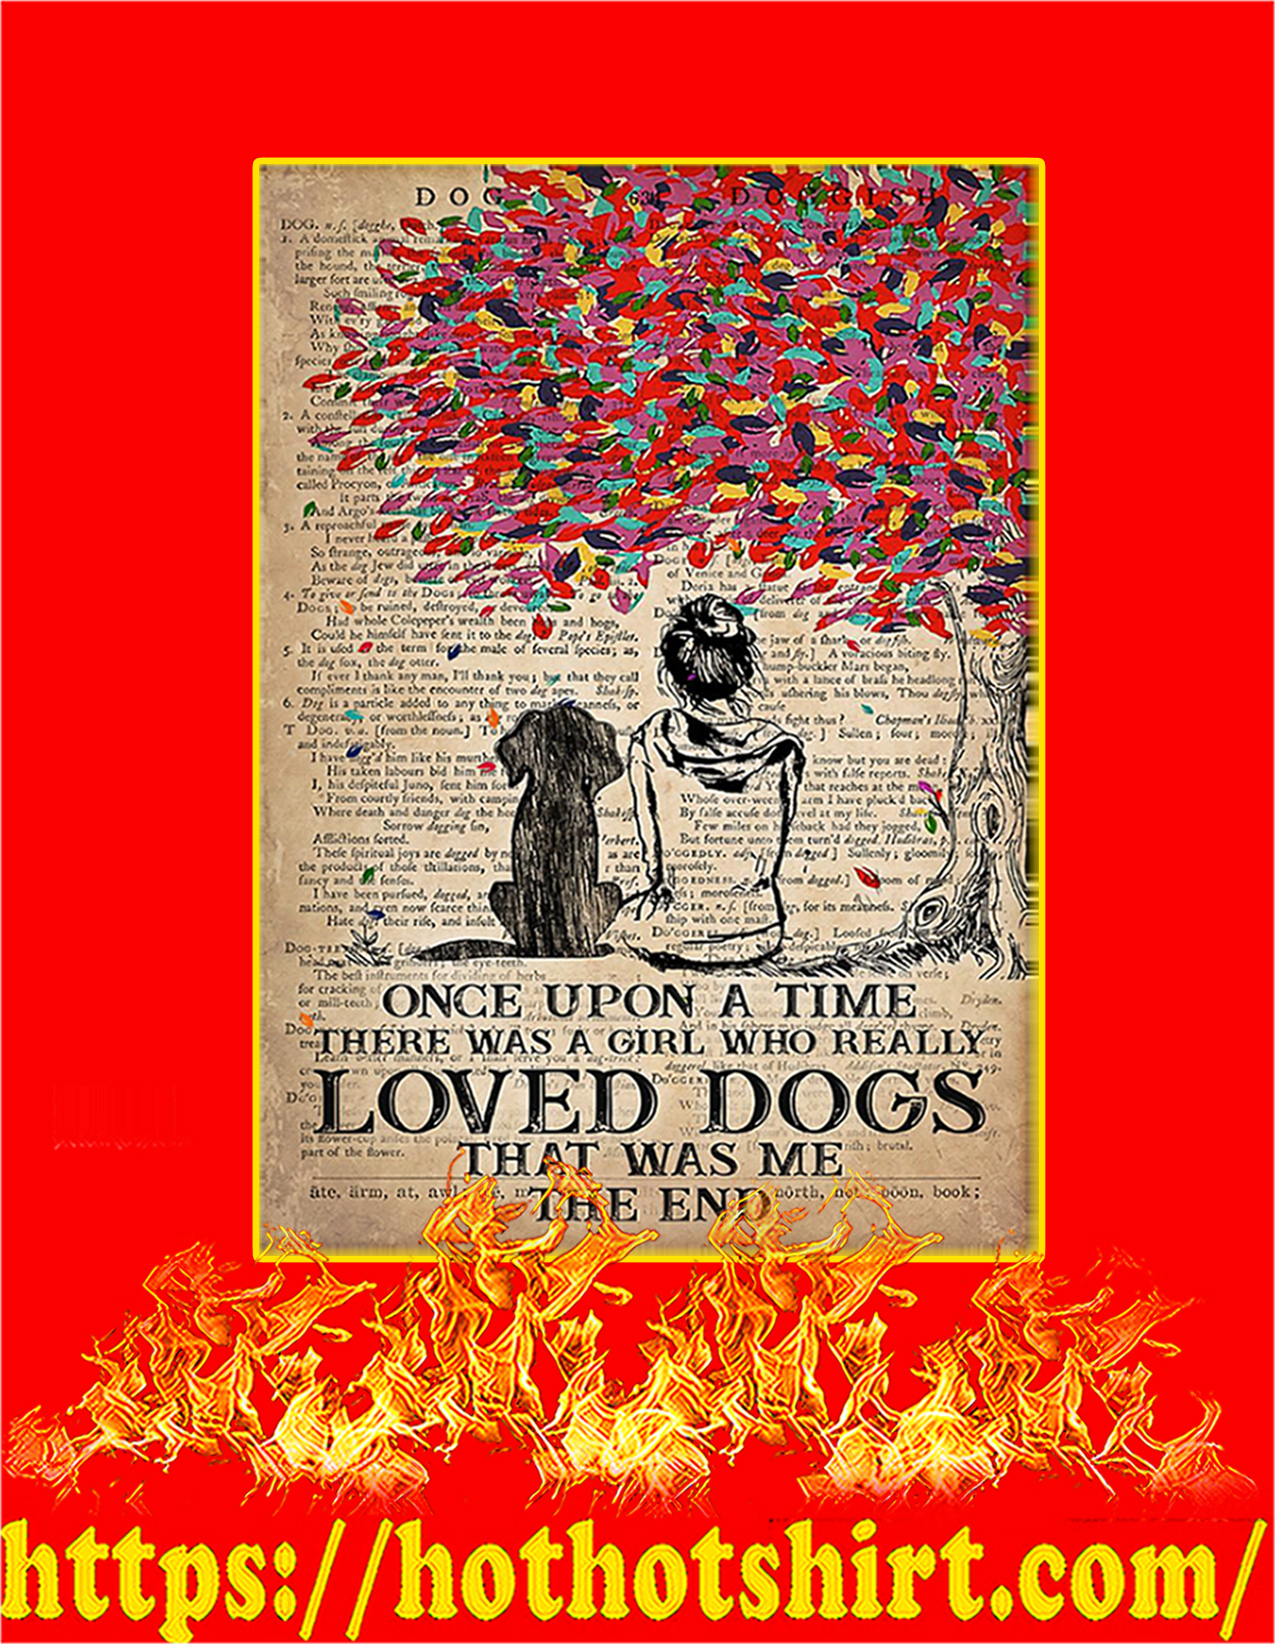 Once upon a time a girl loved dogs that was me the end poster - A2